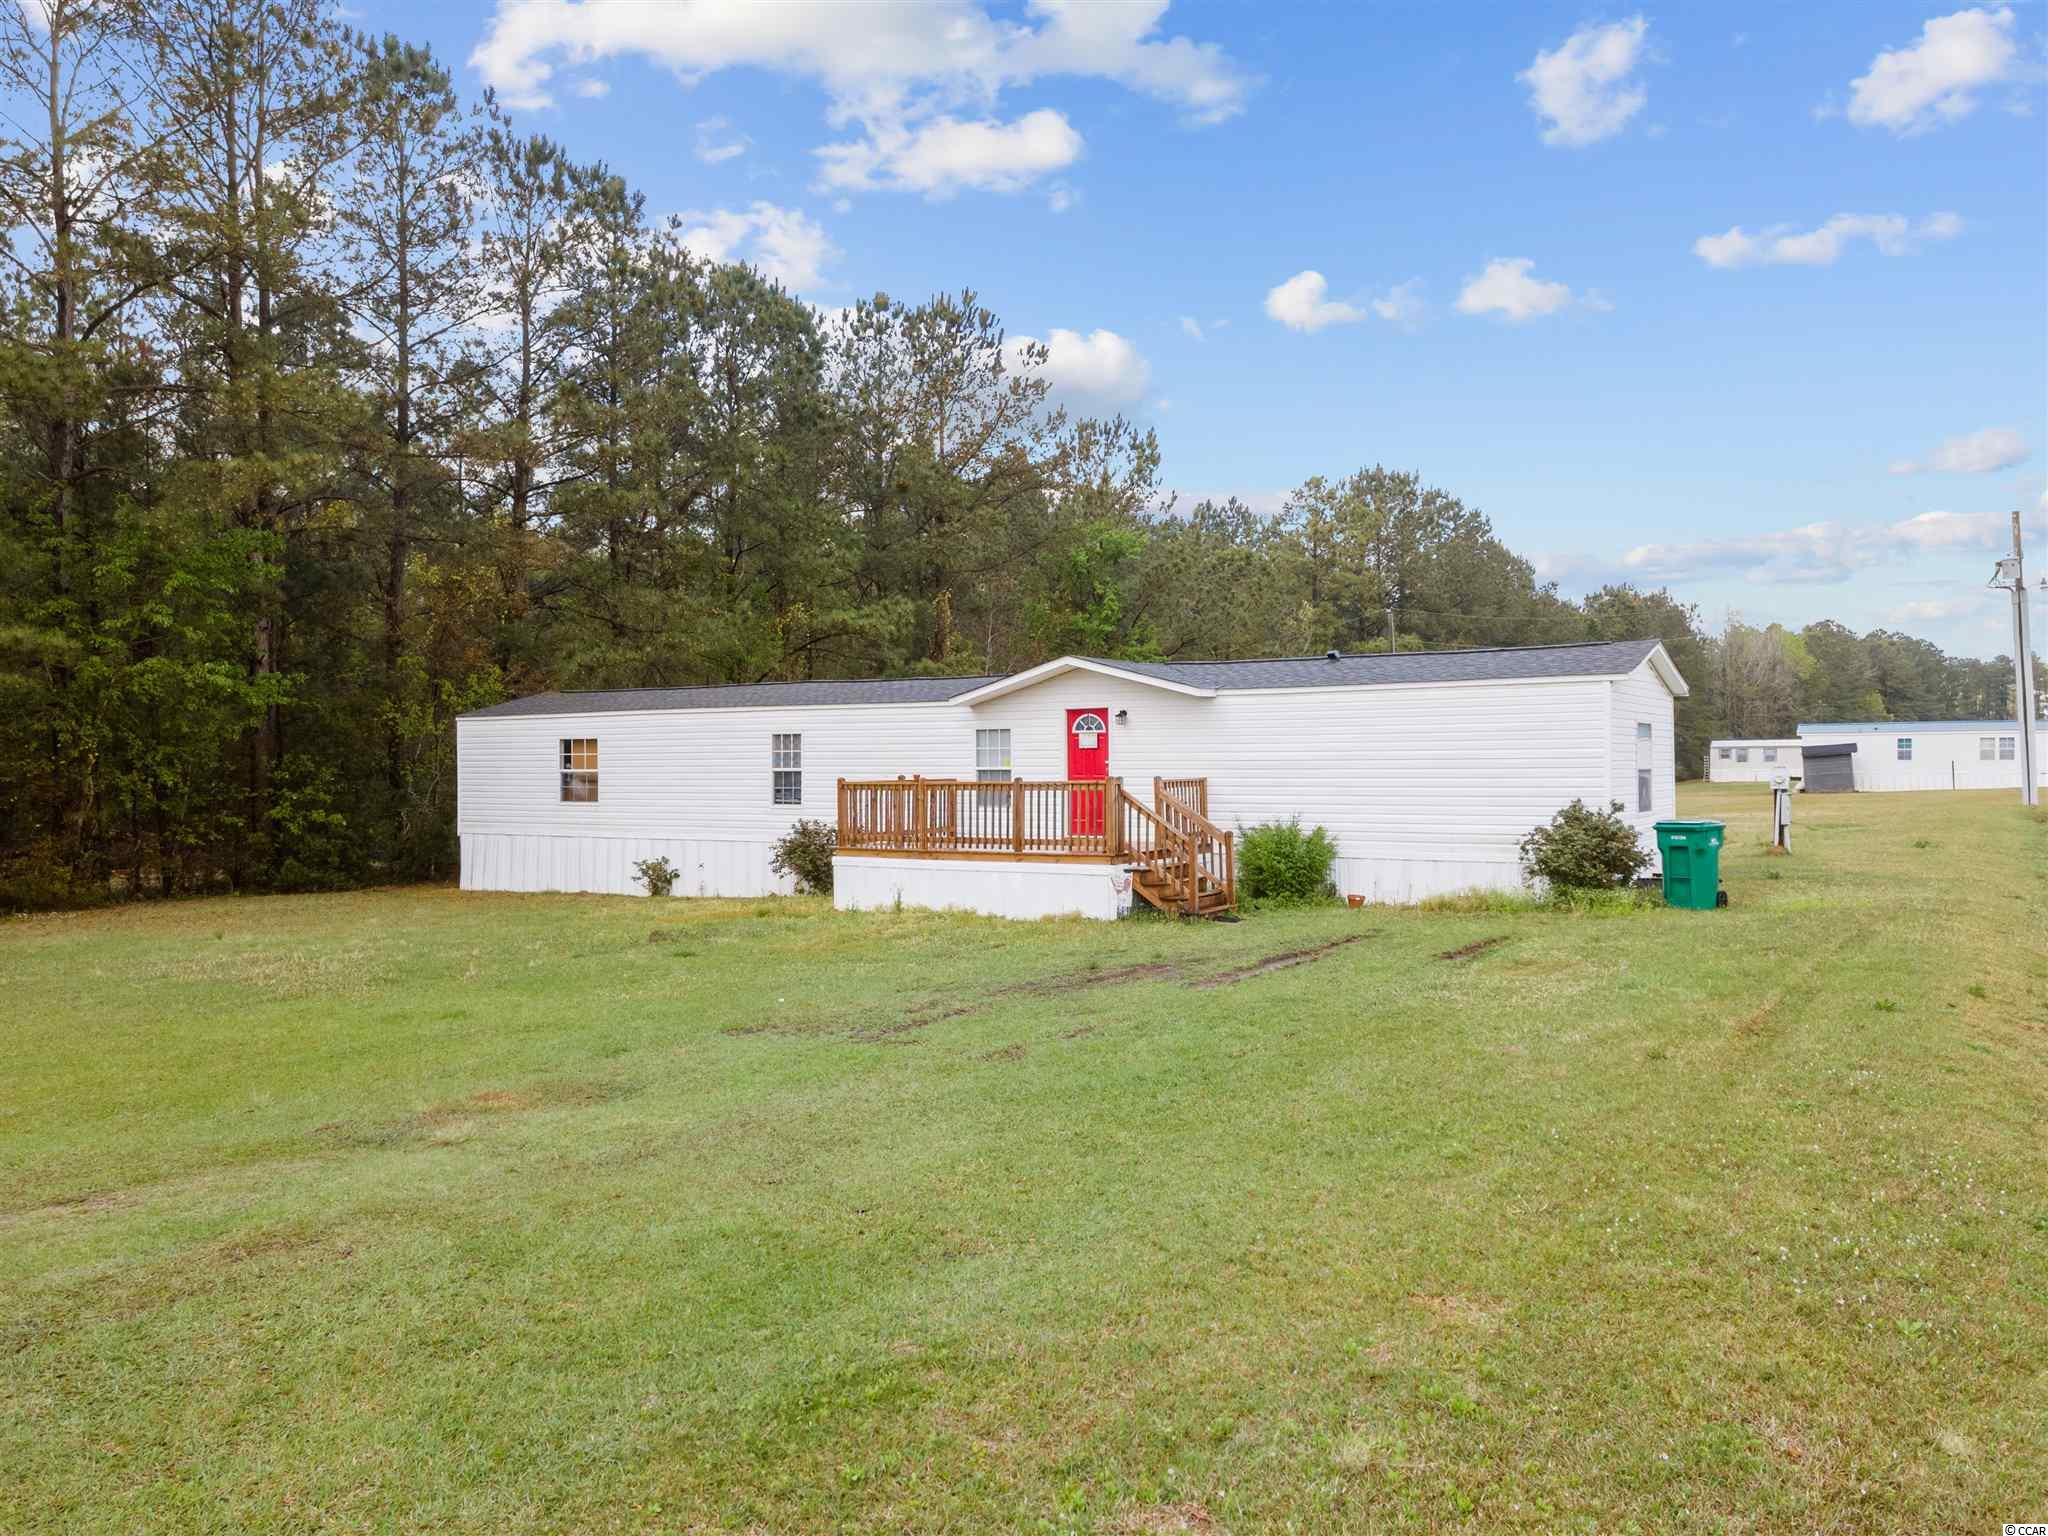 This updated 3 Bedrooms, 2 baths home is located on a very large lake view lot in Williamson Estates. The community is located less 5 minutes from downtown Conway! This home gives a very open welcome from the moment you walk through the front door with the open floor plan and great size kitchen! The floor plan allows for total privacy between master and guest bedrooms Homeowners can relax and enjoy the porch overlooking lake. The home is conveniently located near school districts, dining, shopping, hospitals and grocery stores!